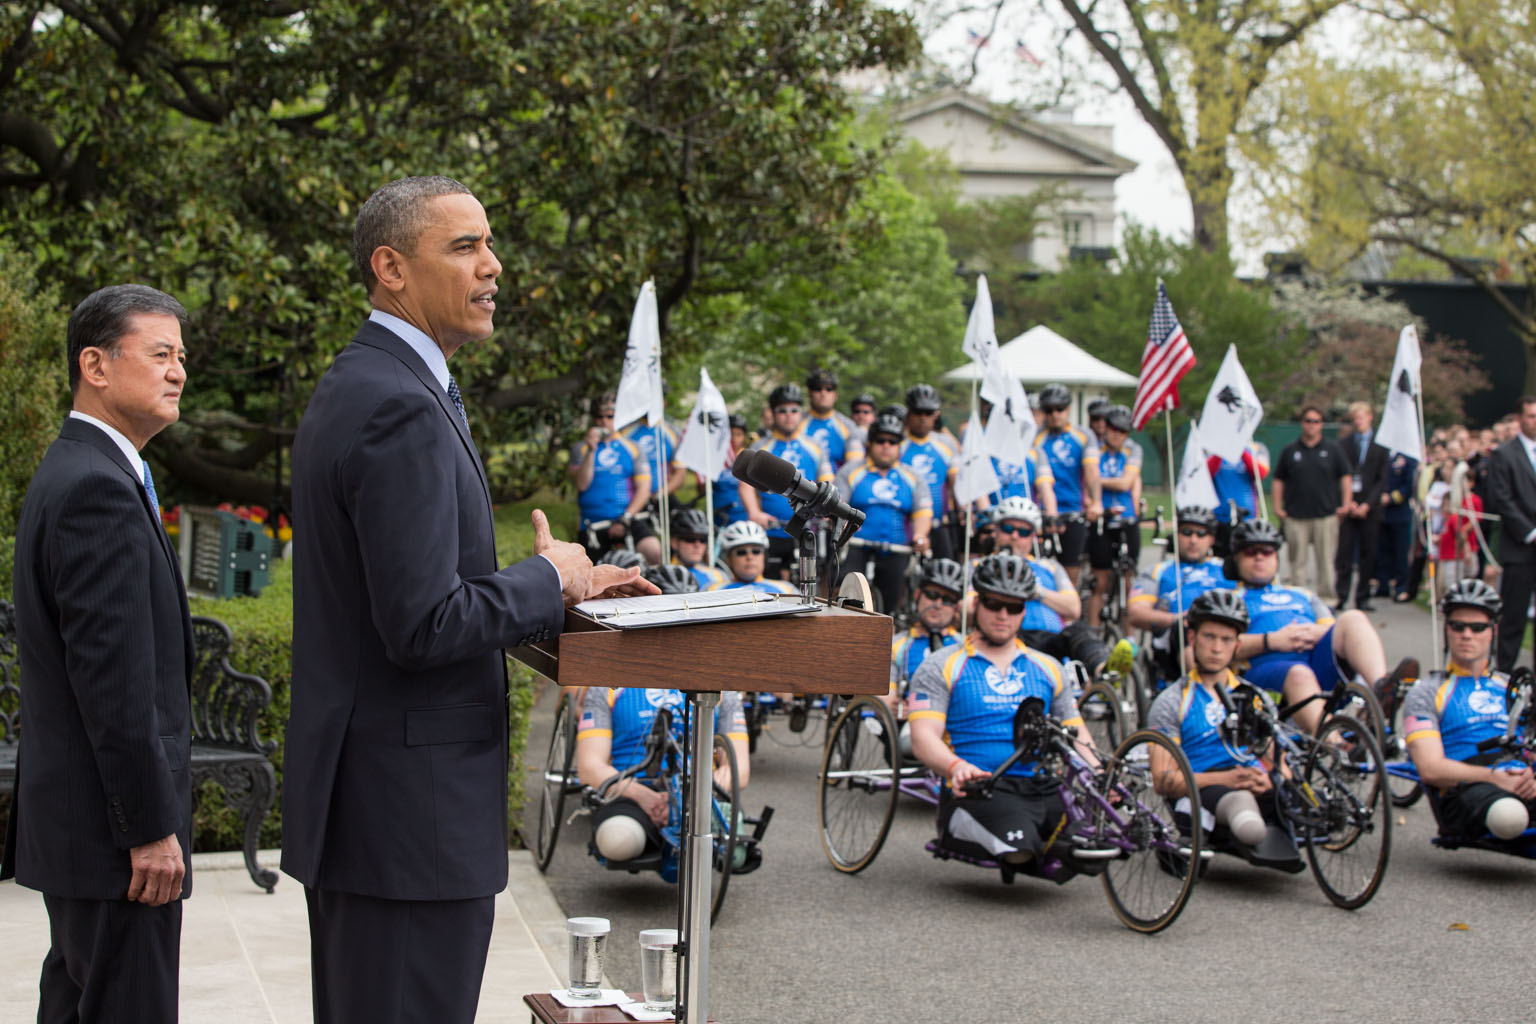 President Obama and  VA Secretary Shinseki welcome the Wounded Warrior Project's Soldier Ride to the South Lawn, April 17, 2013